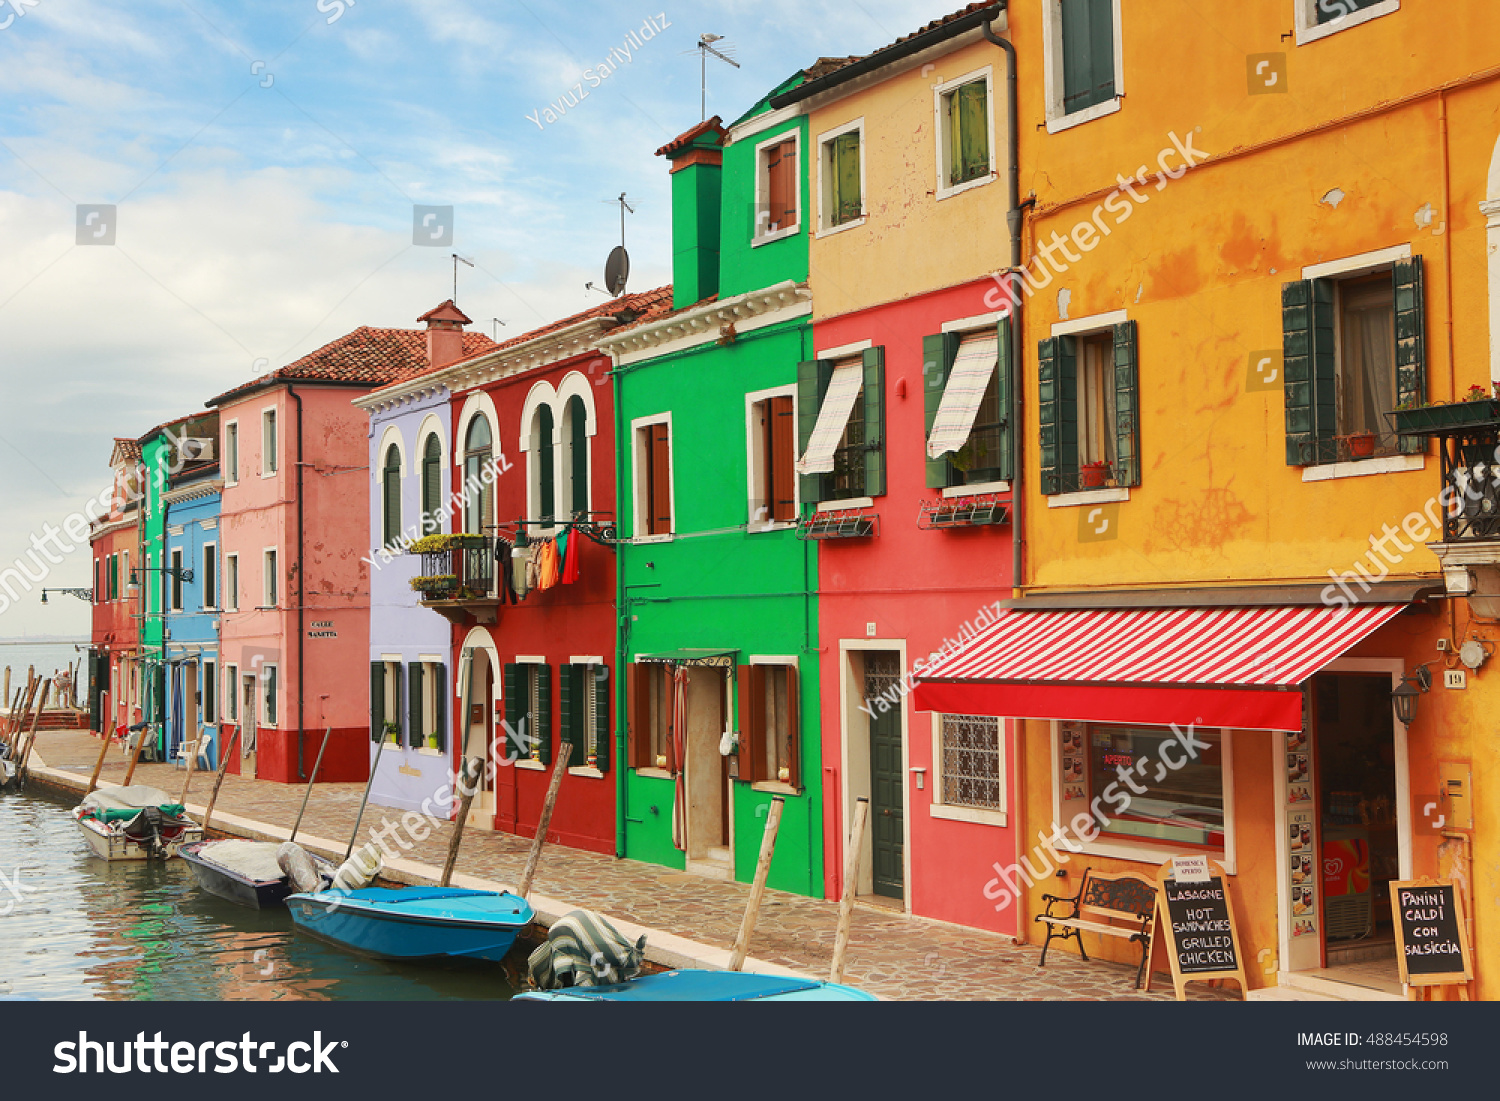 Colorful burano italy burano tourism - Burano Italy September 17 2016 Colorful Houses Of Burano Island In Venice Everyday Hundreds Of Tourists Visit The Island And Enjoy The Peaceful And